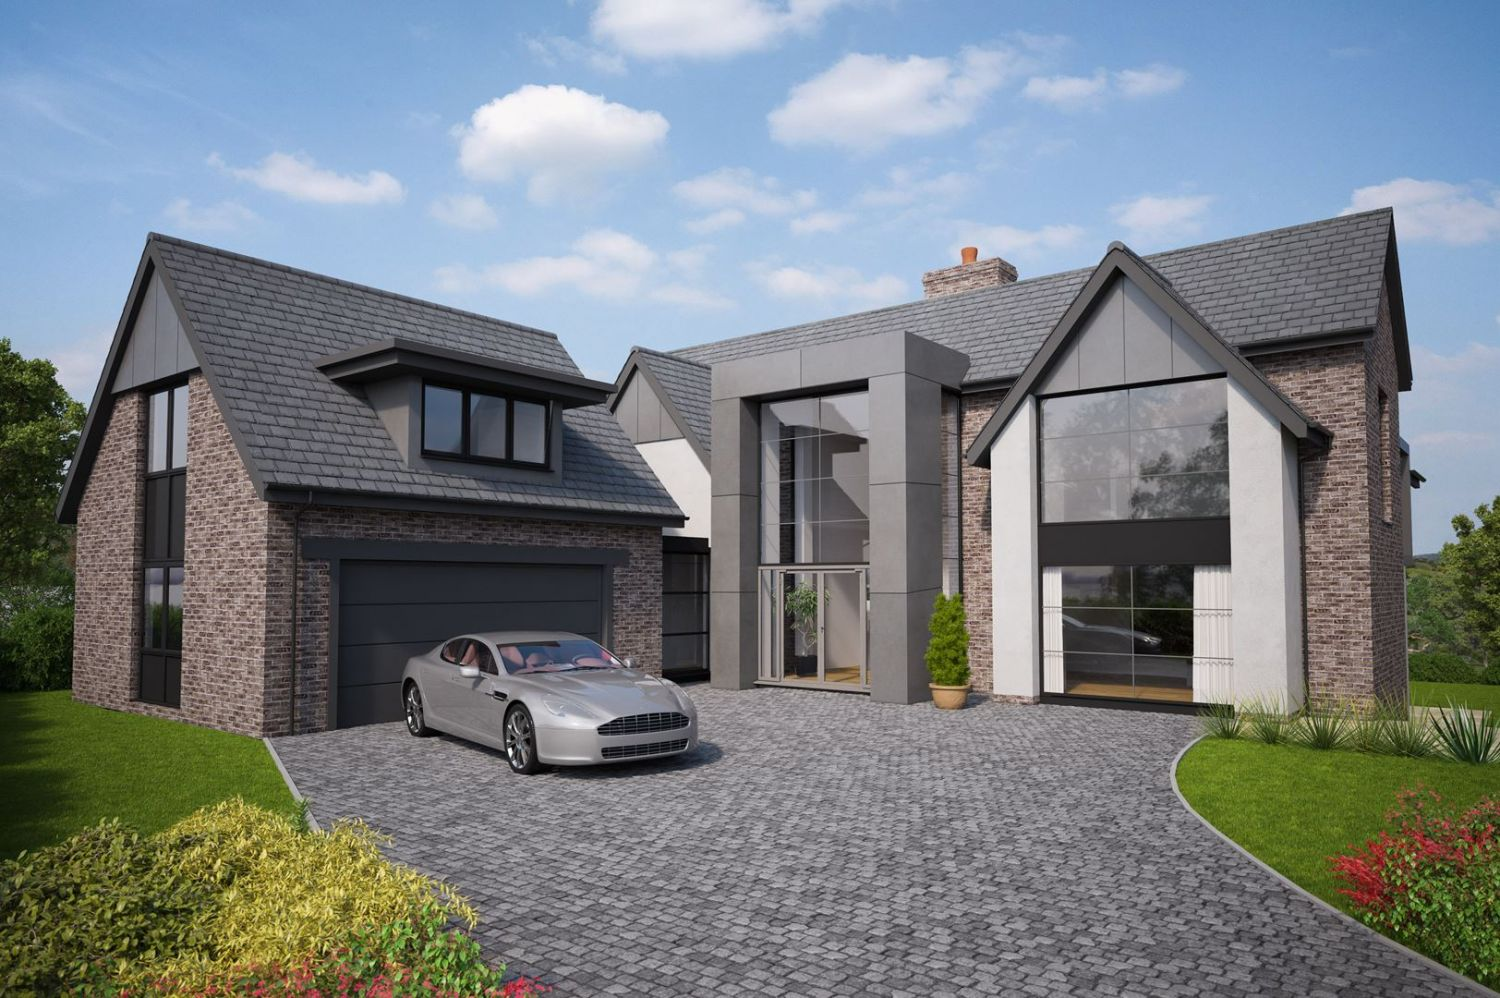 New build houses conwy north wales architectural for Build a modern home for 200k